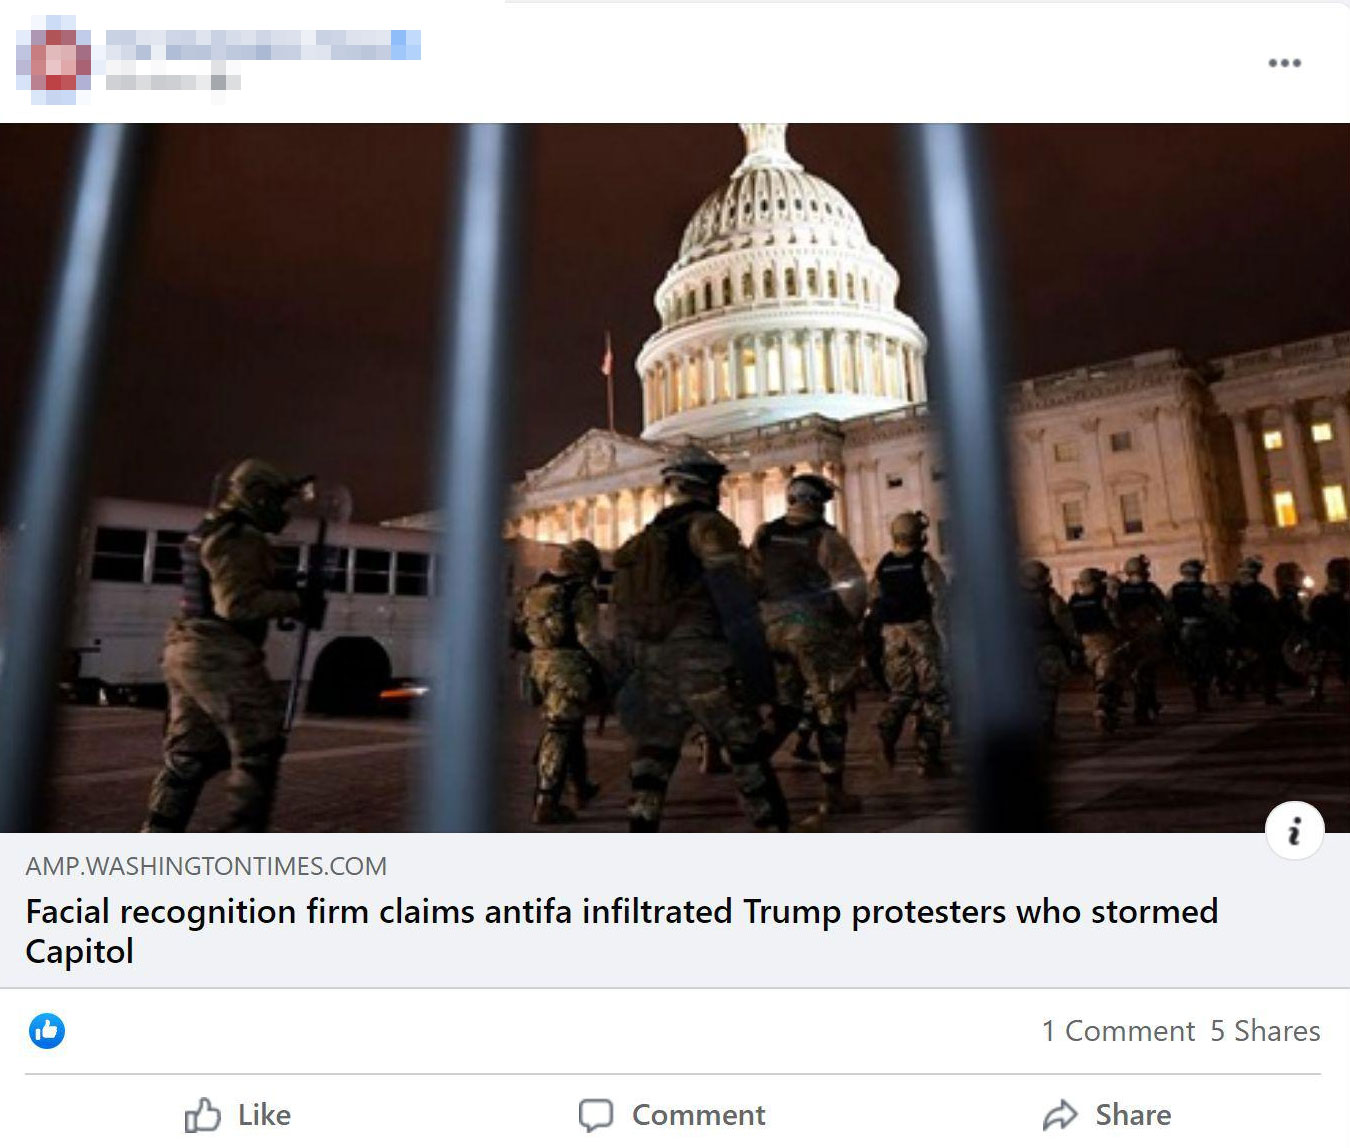 "A Facebook Post by The Washington Times of their story ""Facial recognition firm claims antifa infilrated Trump protesters who stormed Capitol. This post was later updated as it contained misinformation."""